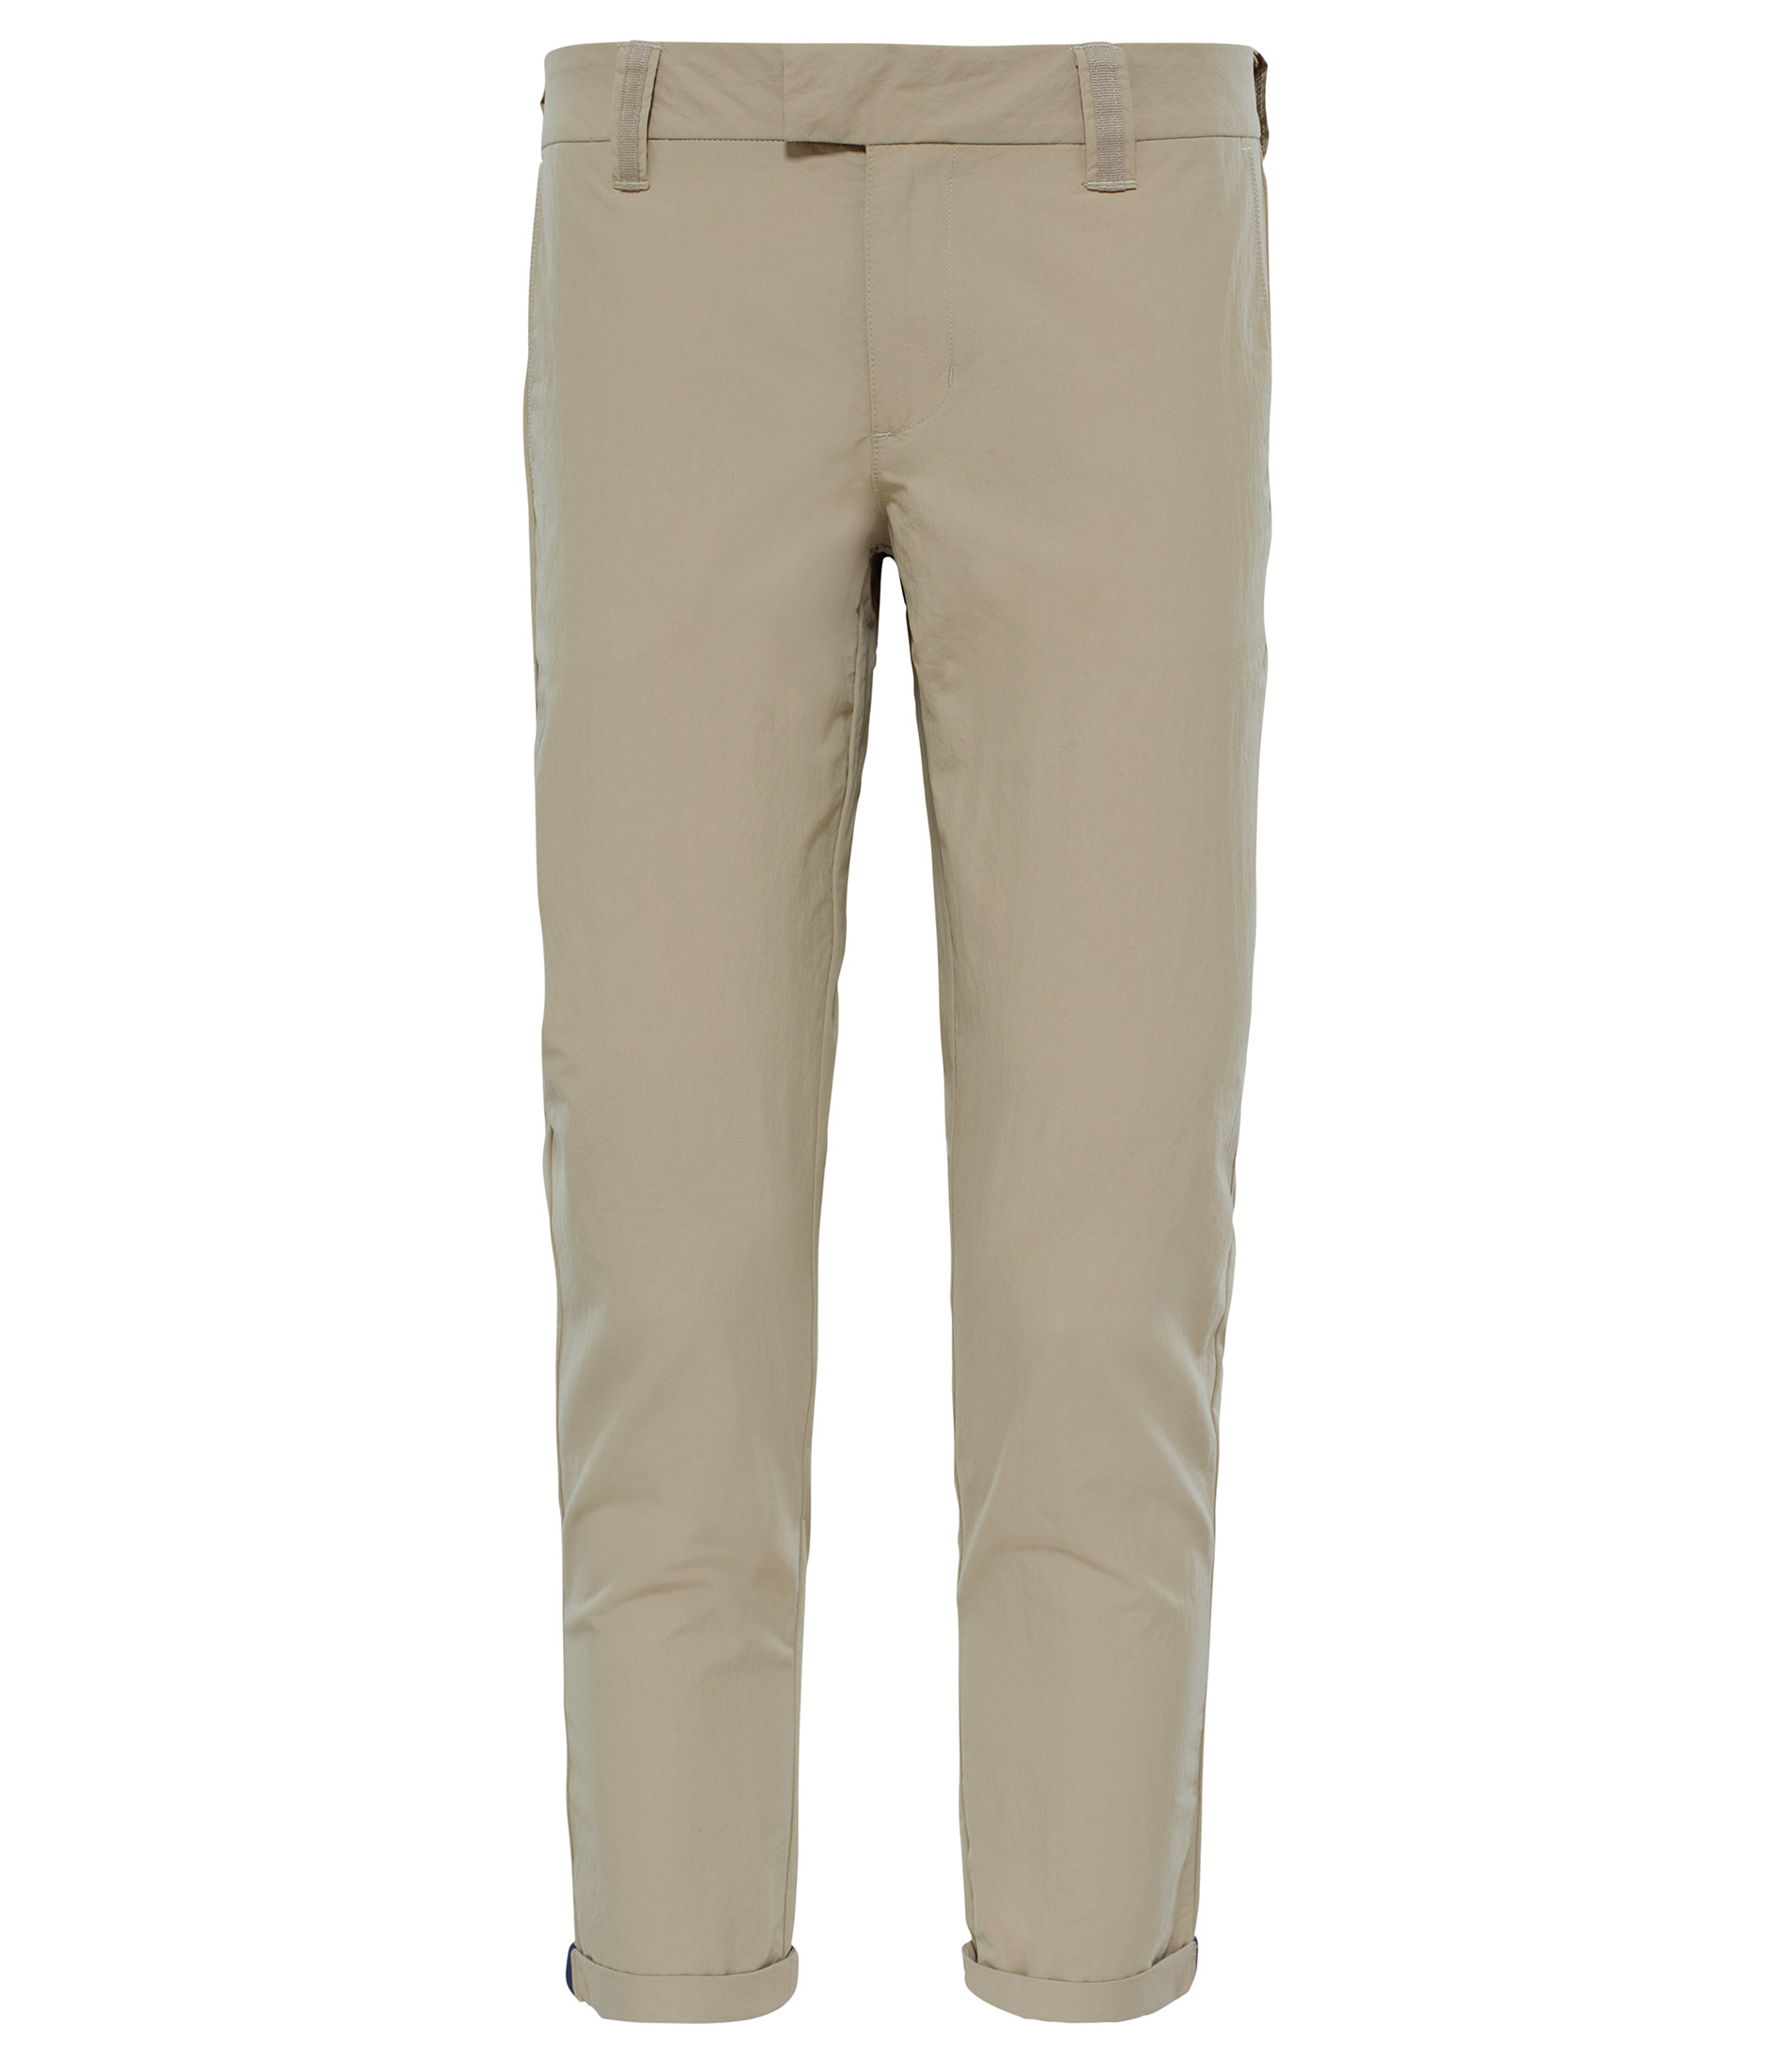 THE NORTH FACE W CAGOULE PANT, DUNE BEIGE velikost: 8